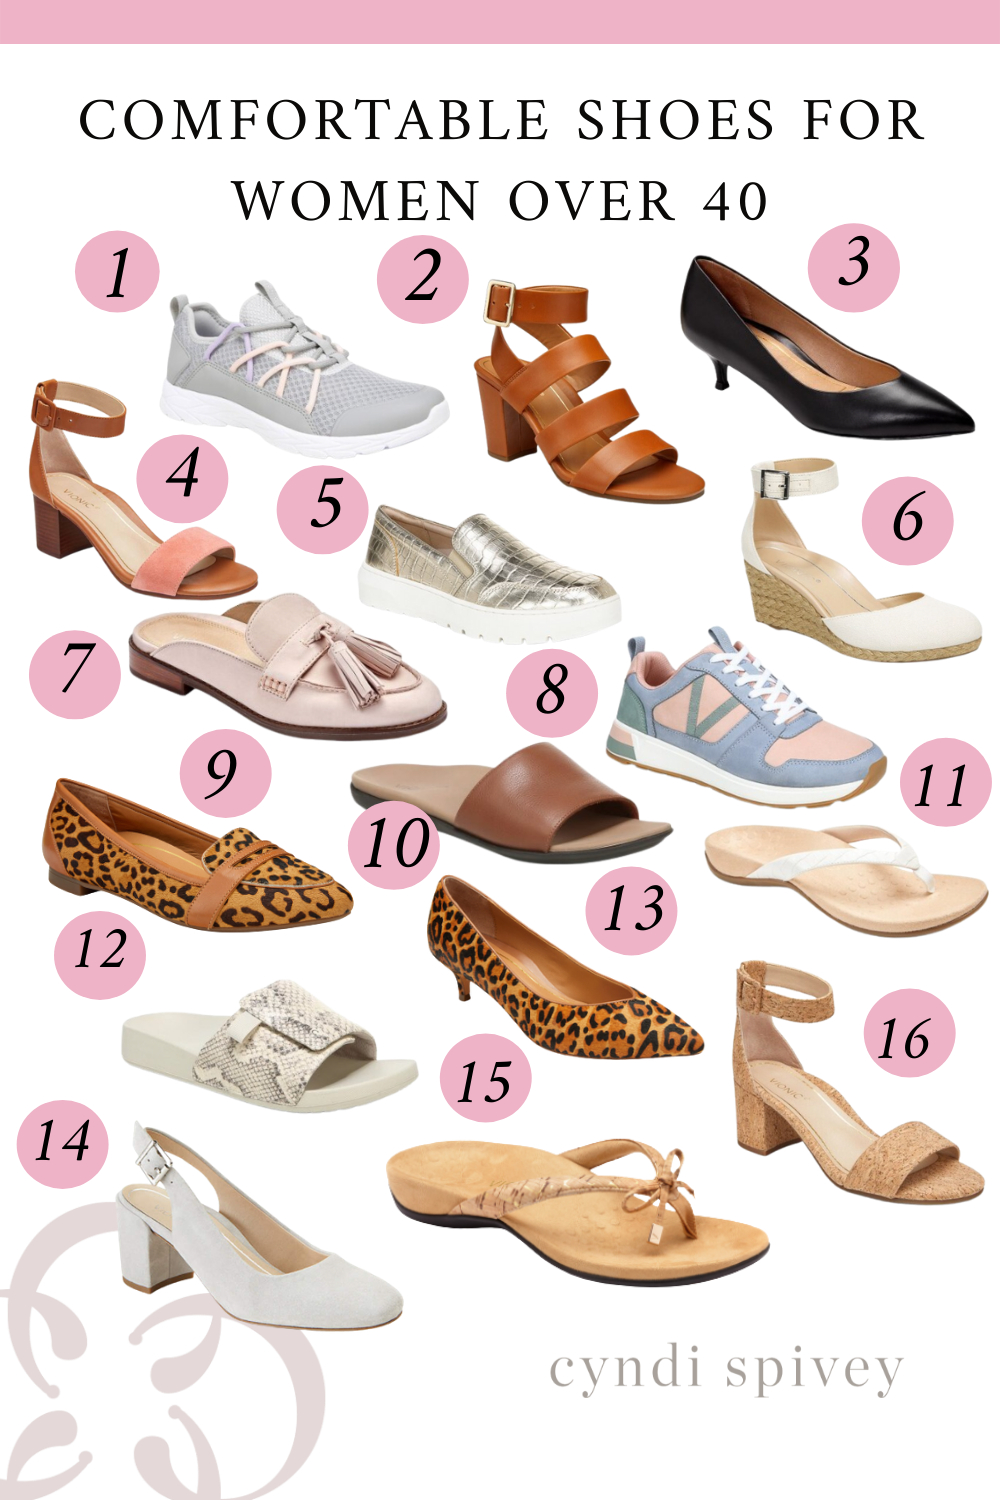 Comfortable Shoes for Women Over 40